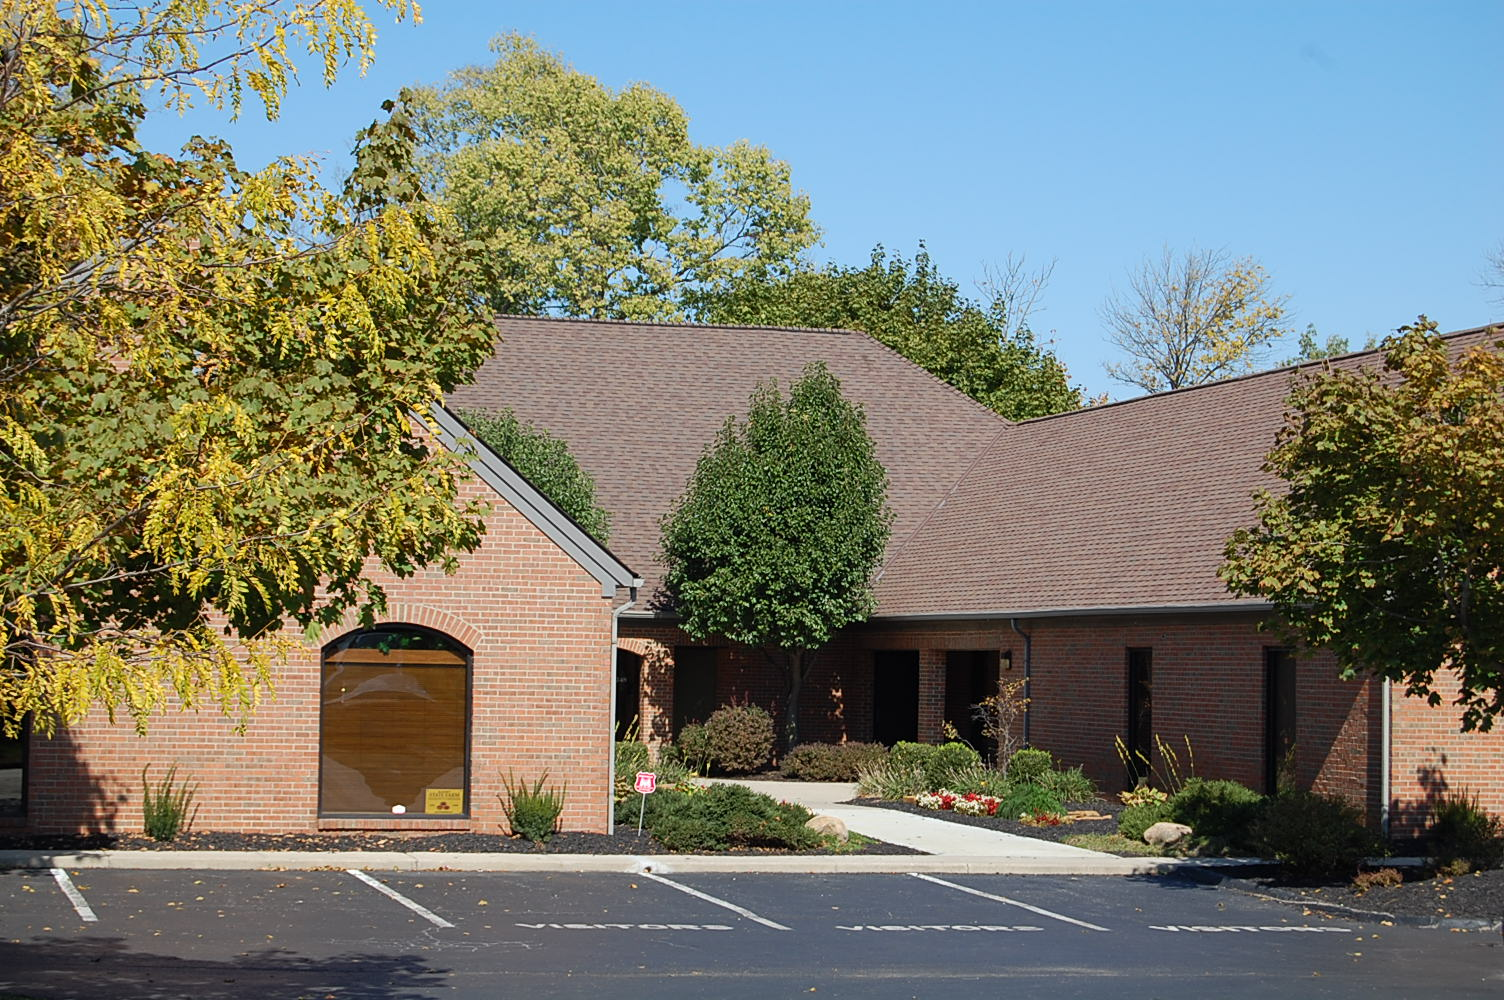 Commercial Property For Sale Marysville Ohio